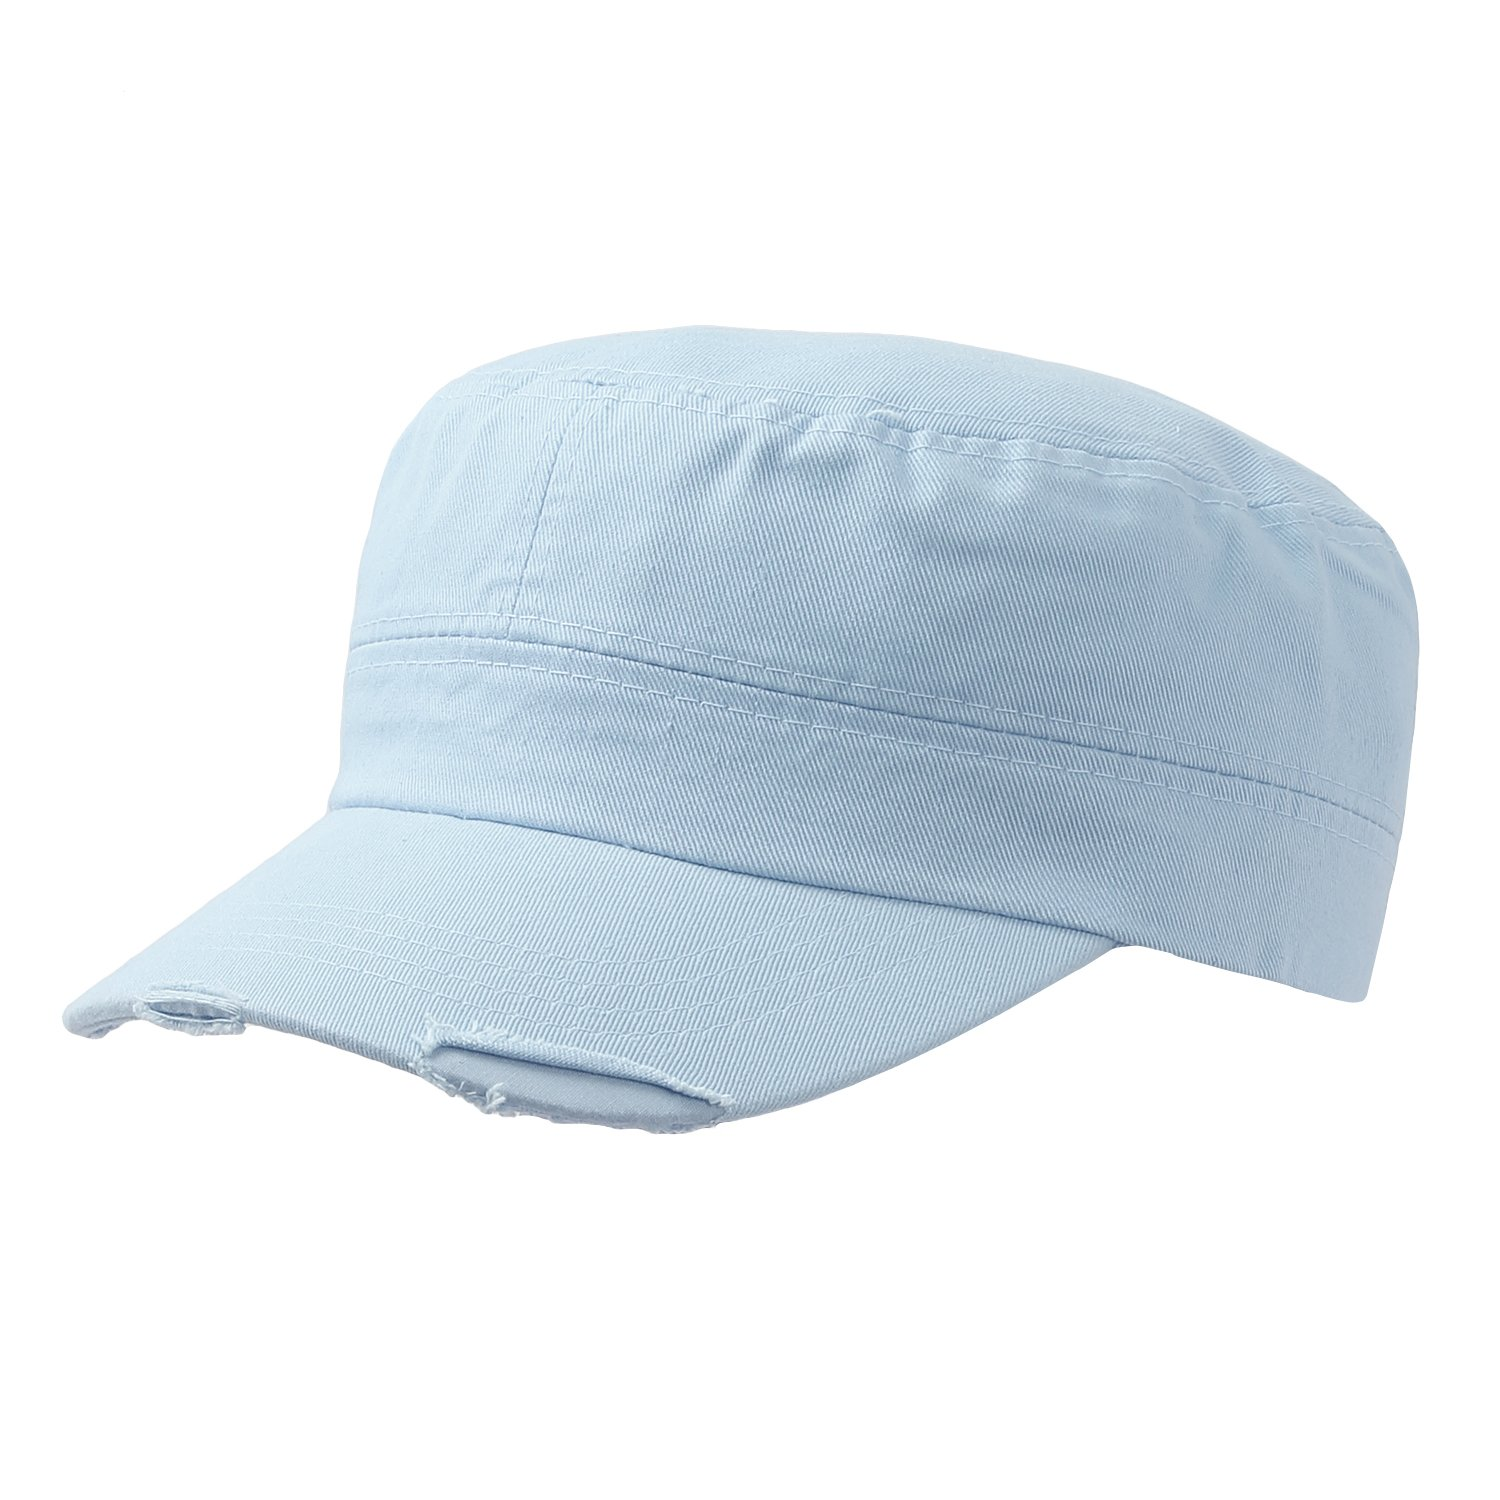 6db5ce7b25a Plain Cadet Hat With Distressed Visor at Amazon Men s Clothing store